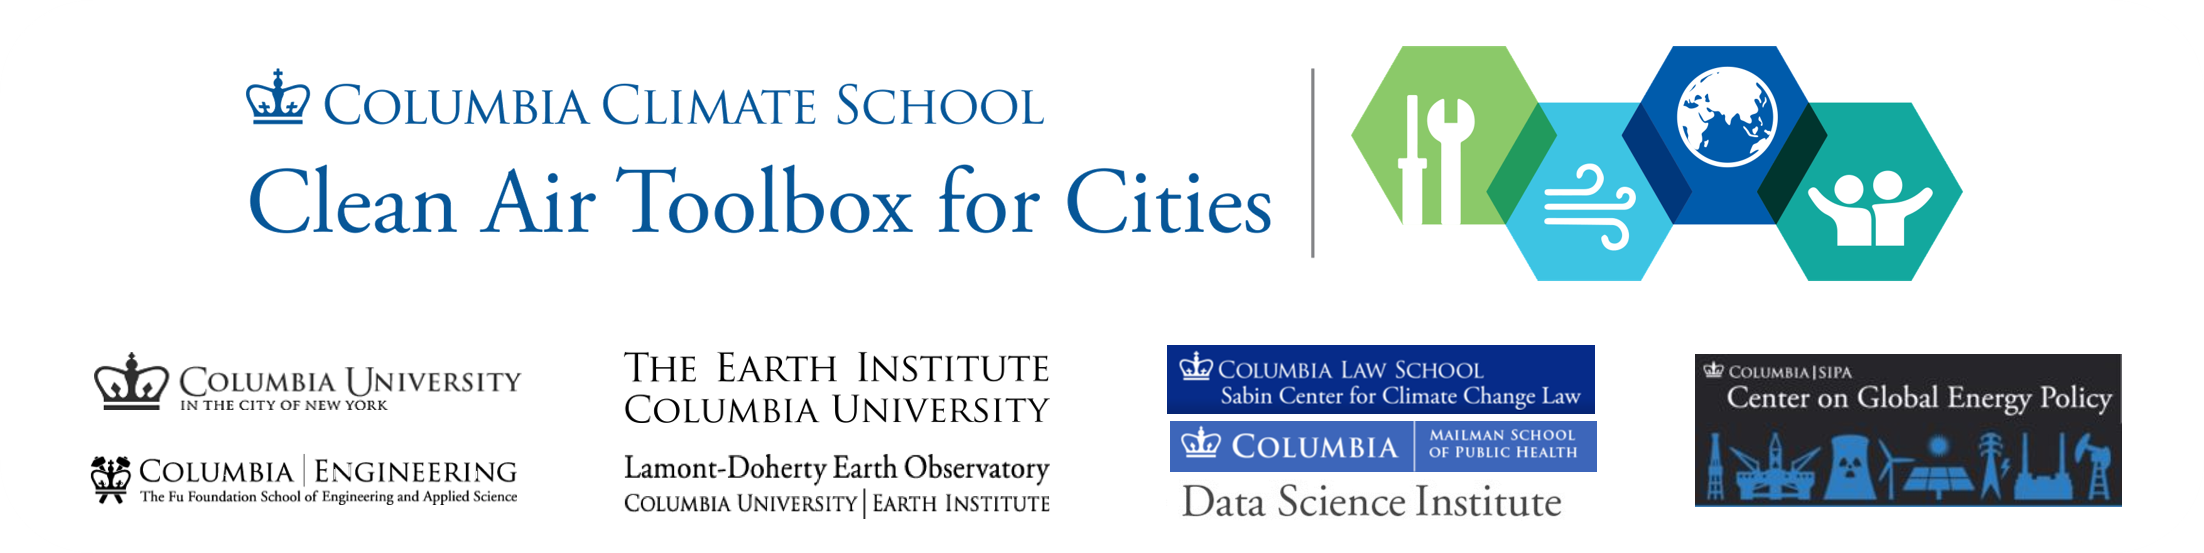 Columbia University Clean Air Toolbox for Cities